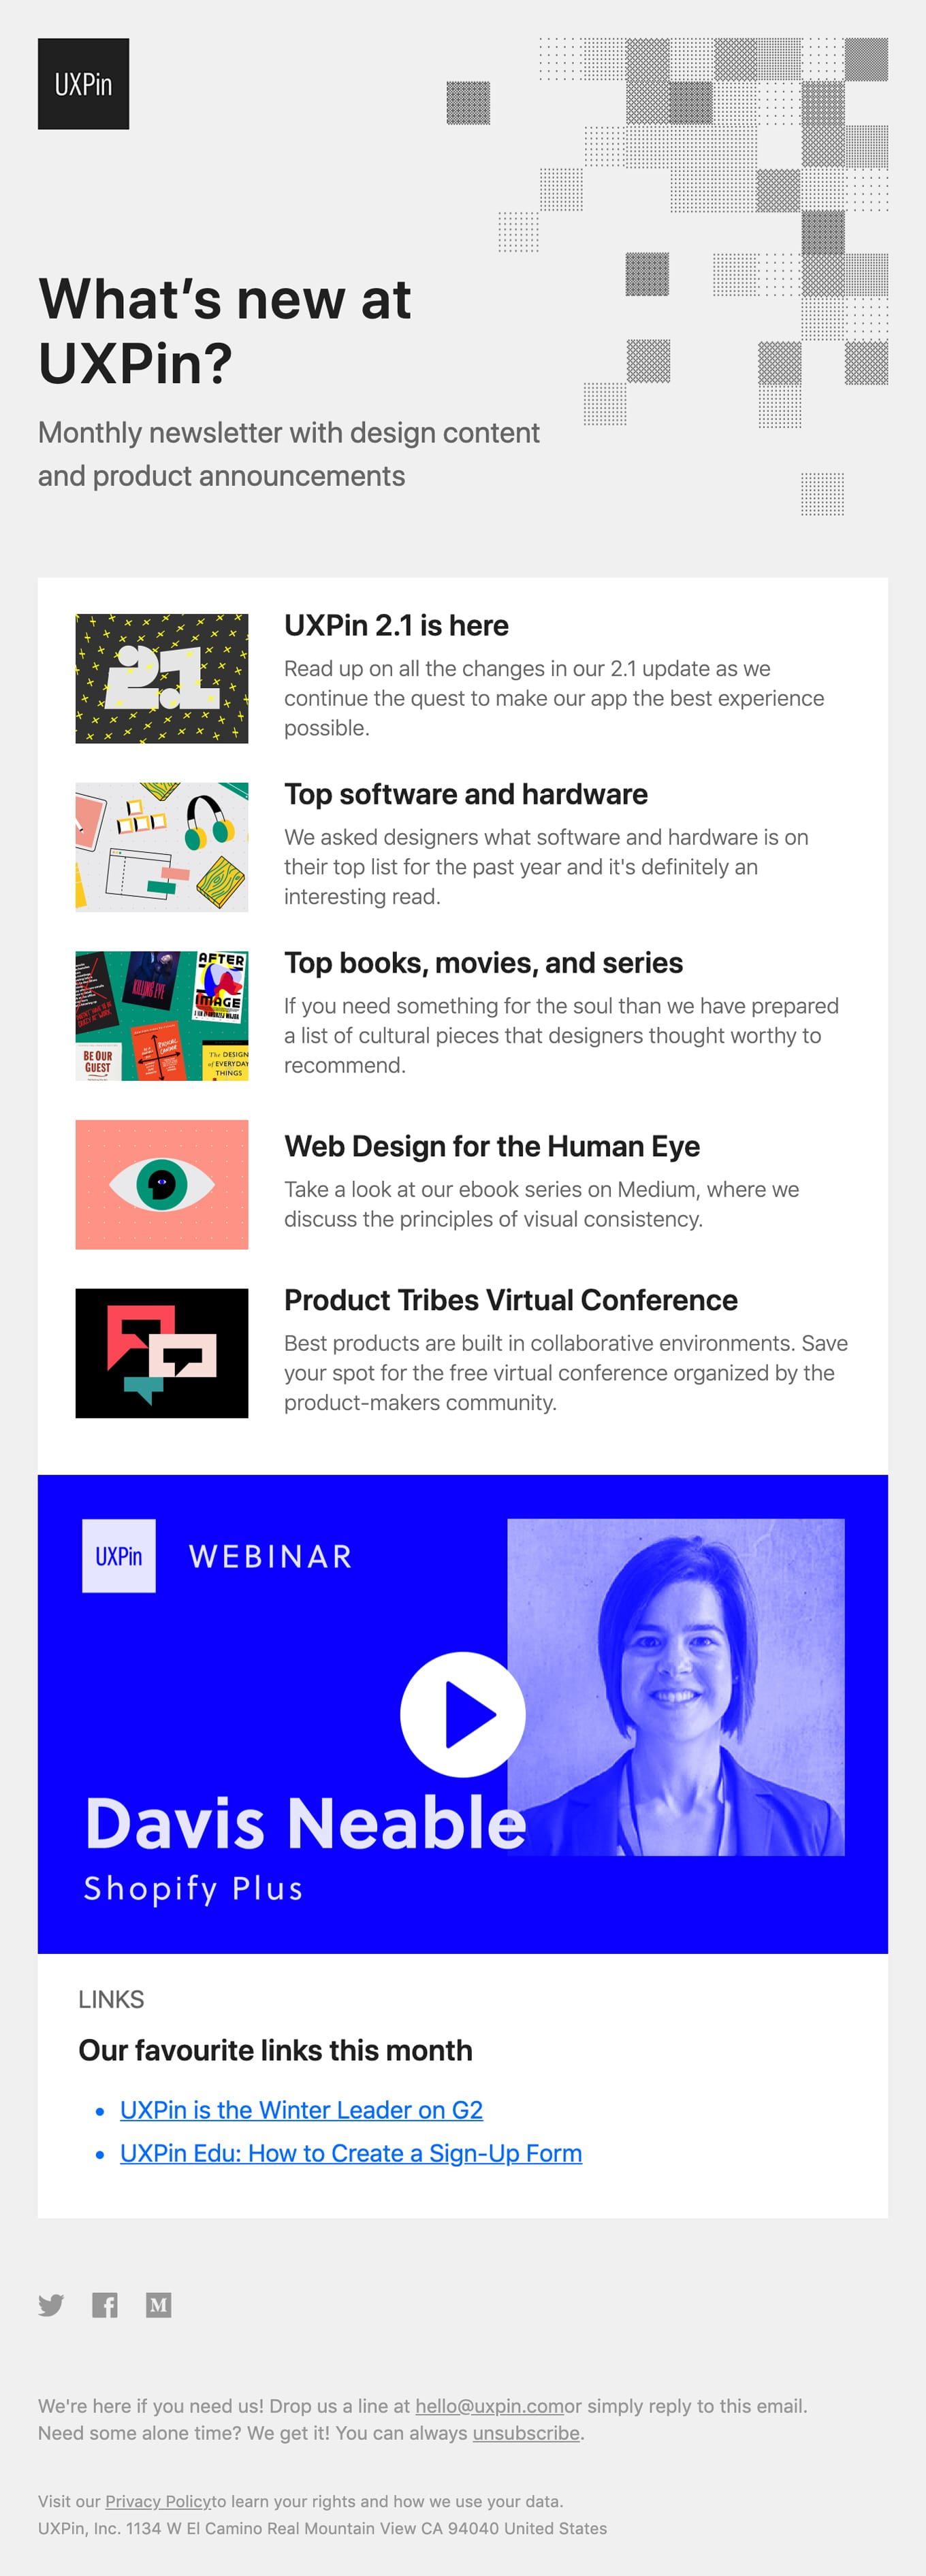 2019 in review, webinar with Shopify, and free design conference Email Screenshot